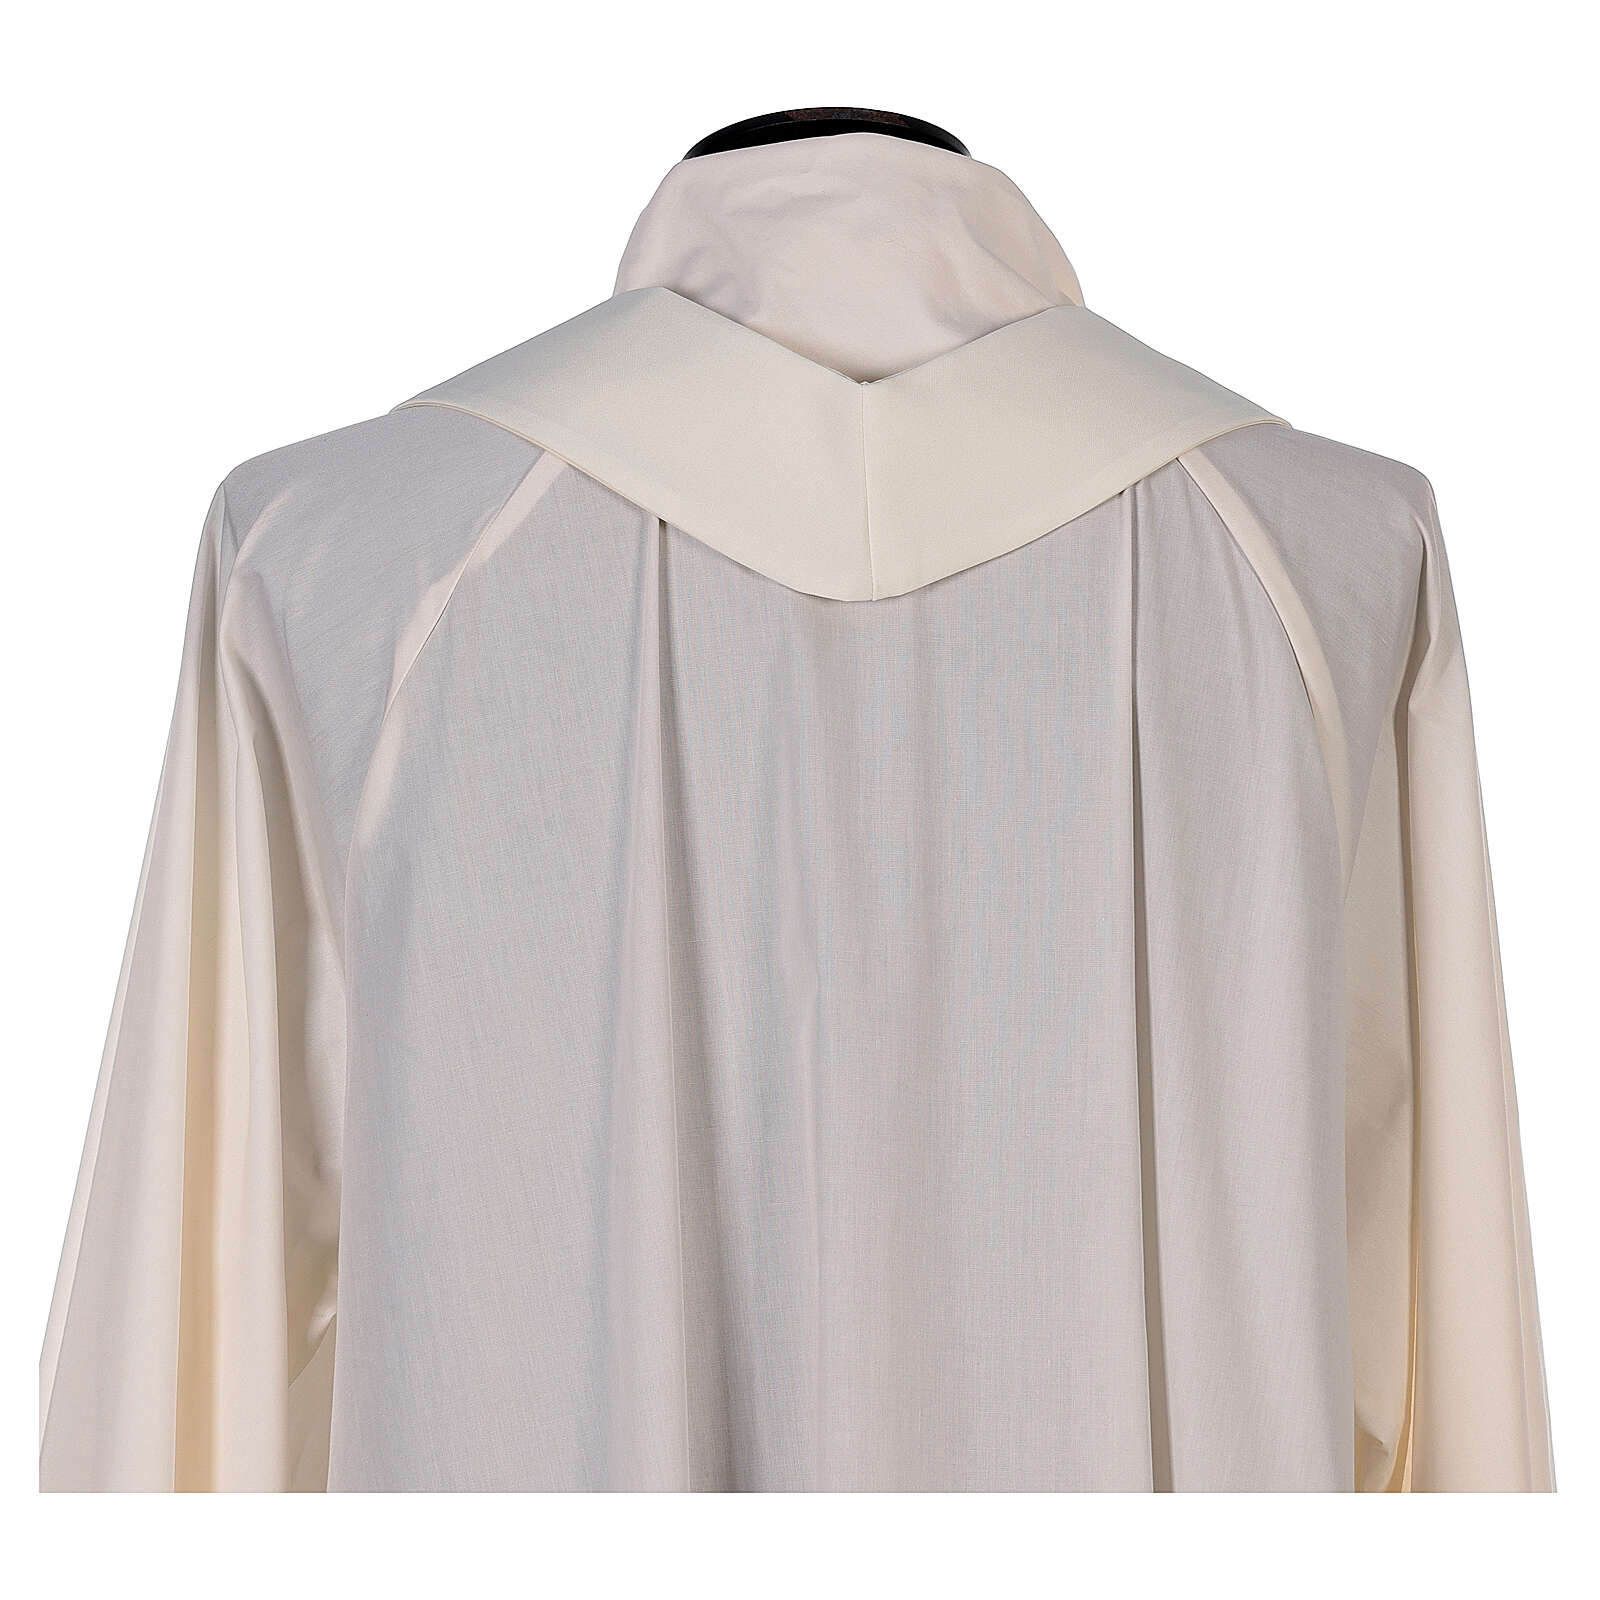 Chasuble with sublimation print T-shape 100% polyester 4